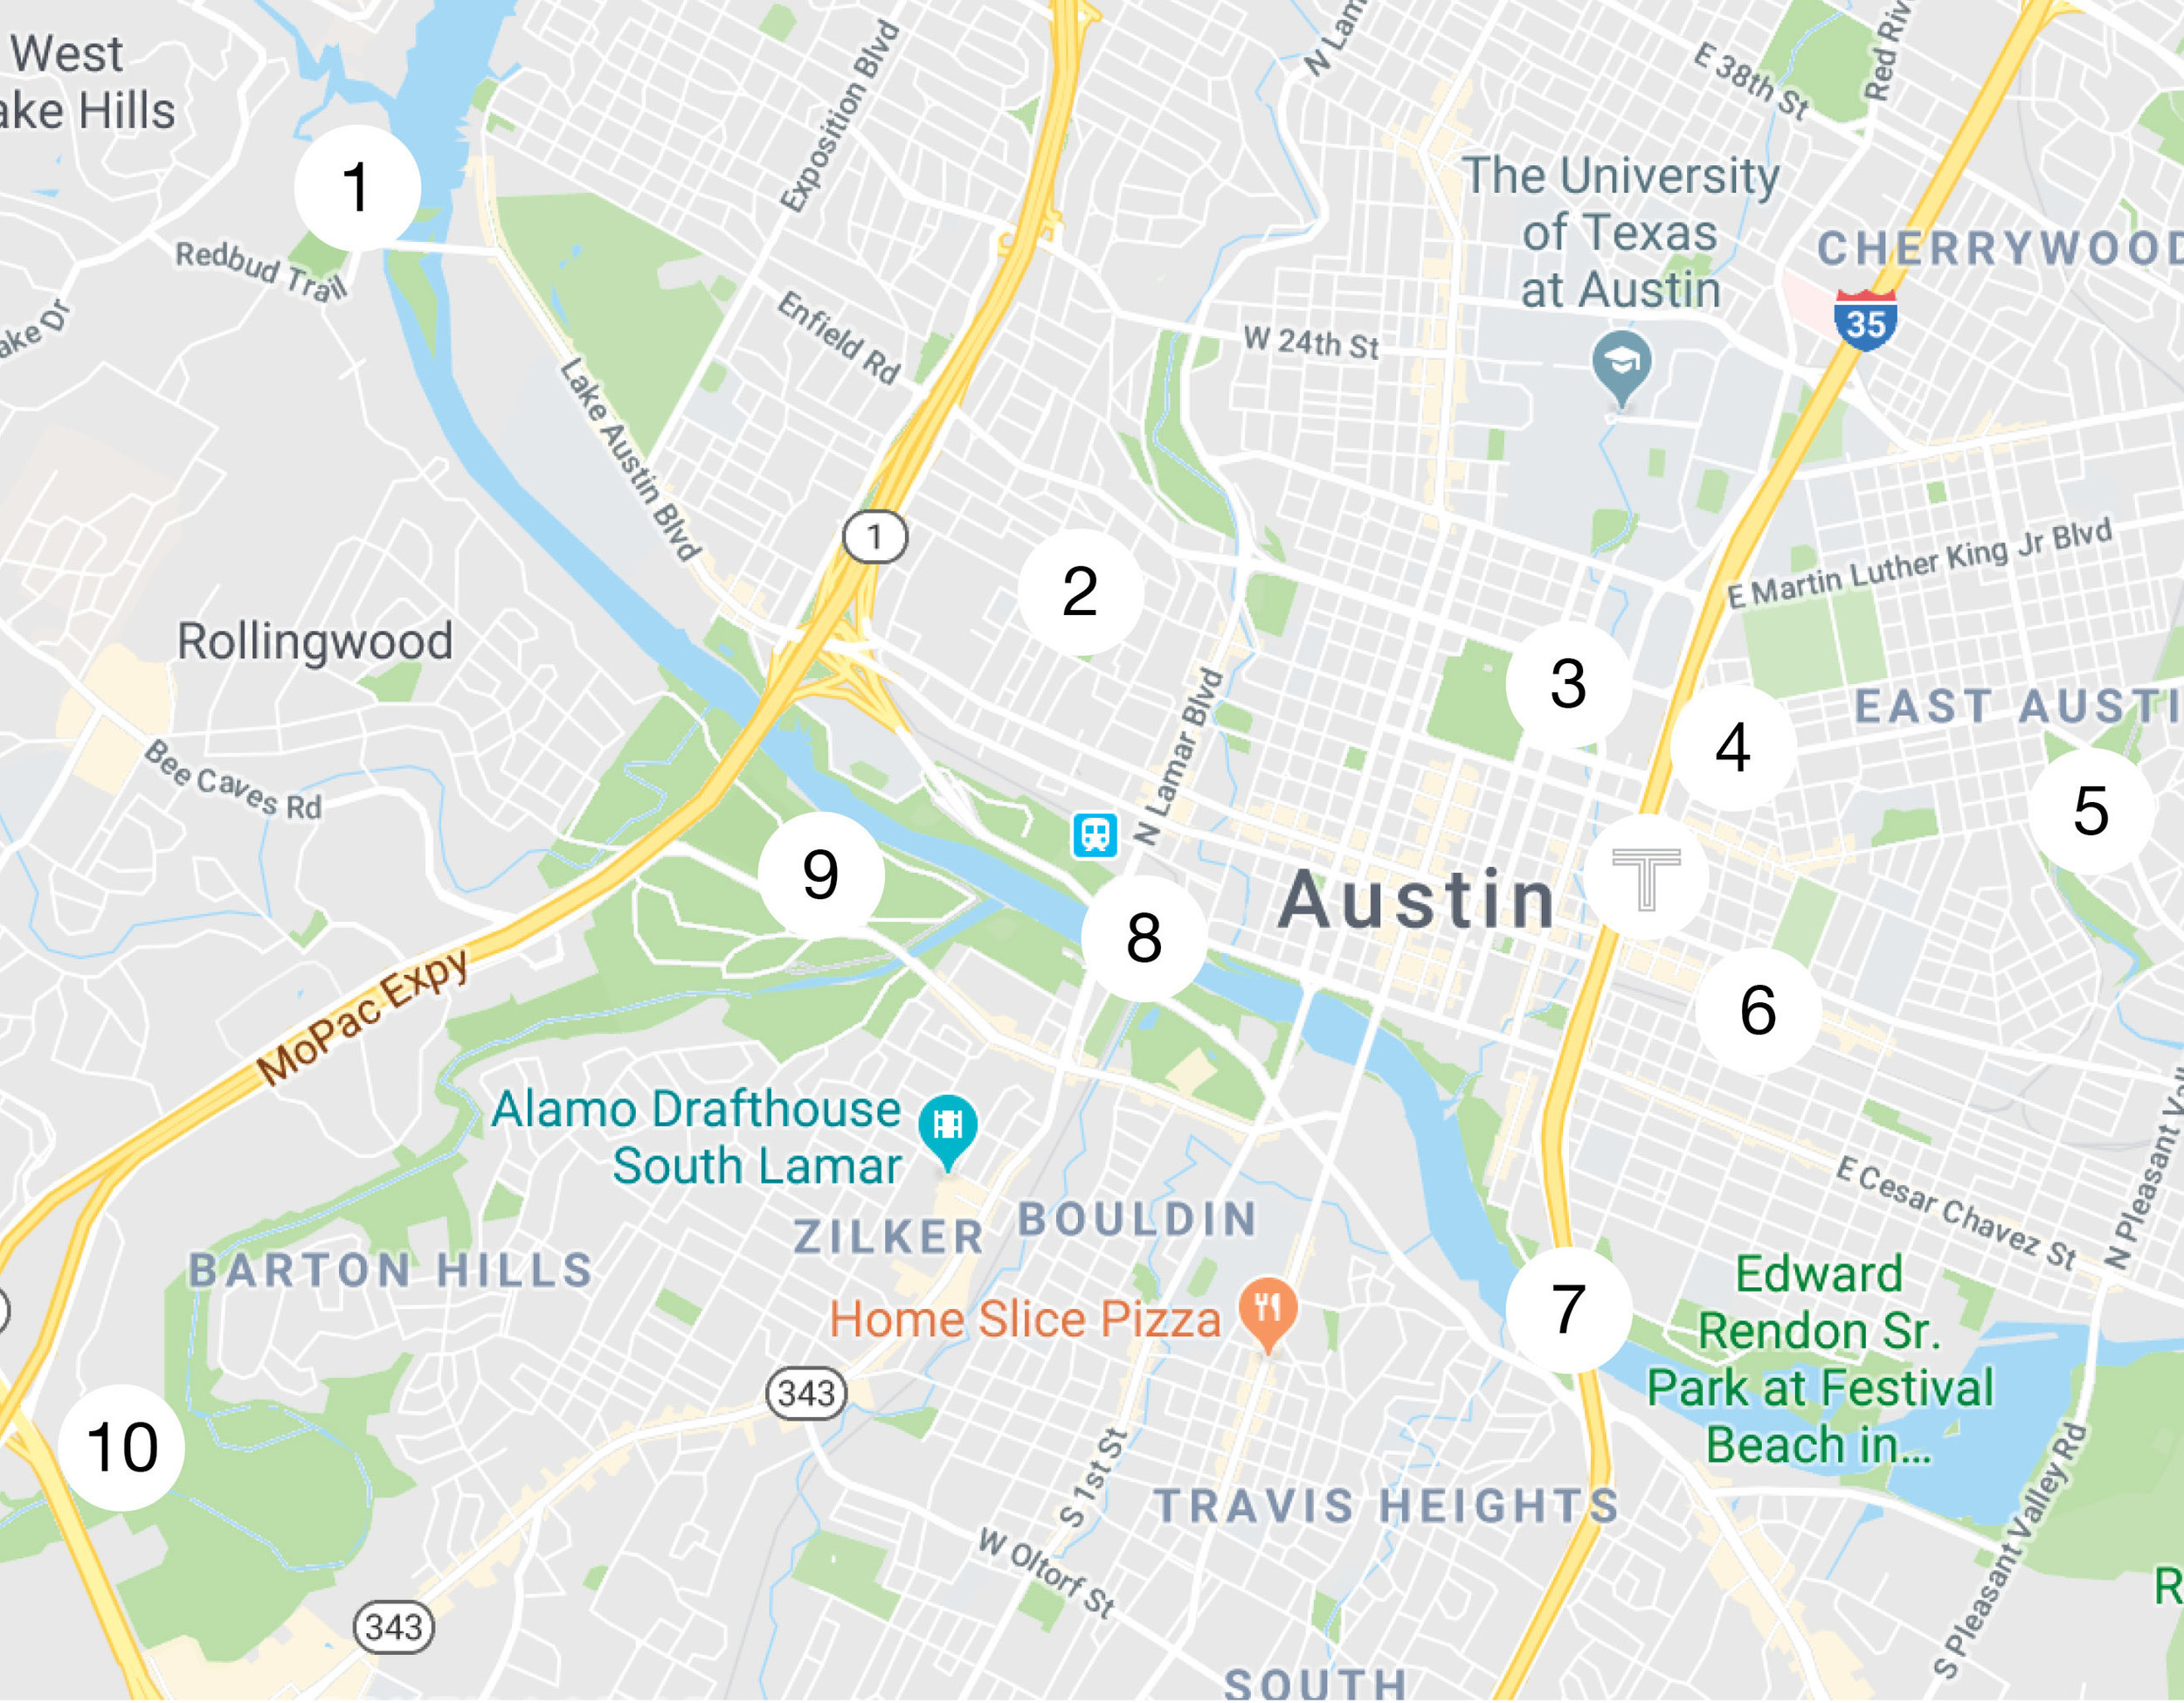 7 Austin Parks to Enjoy With Your Pup — Moreland Properties Blog on jj pickle research center map, mckinney falls state park map, dell diamond map, highland mall map, circuit of the americas map, san marcos map, piedmont park map, the pageant map, fair park map, madison square garden map, wisconsin state parks map, the national map, red rocks amphitheatre map, camp mabry map, edwards aquifer map, austin map, iroquois amphitheater map, lakeline mall map, stadium map,